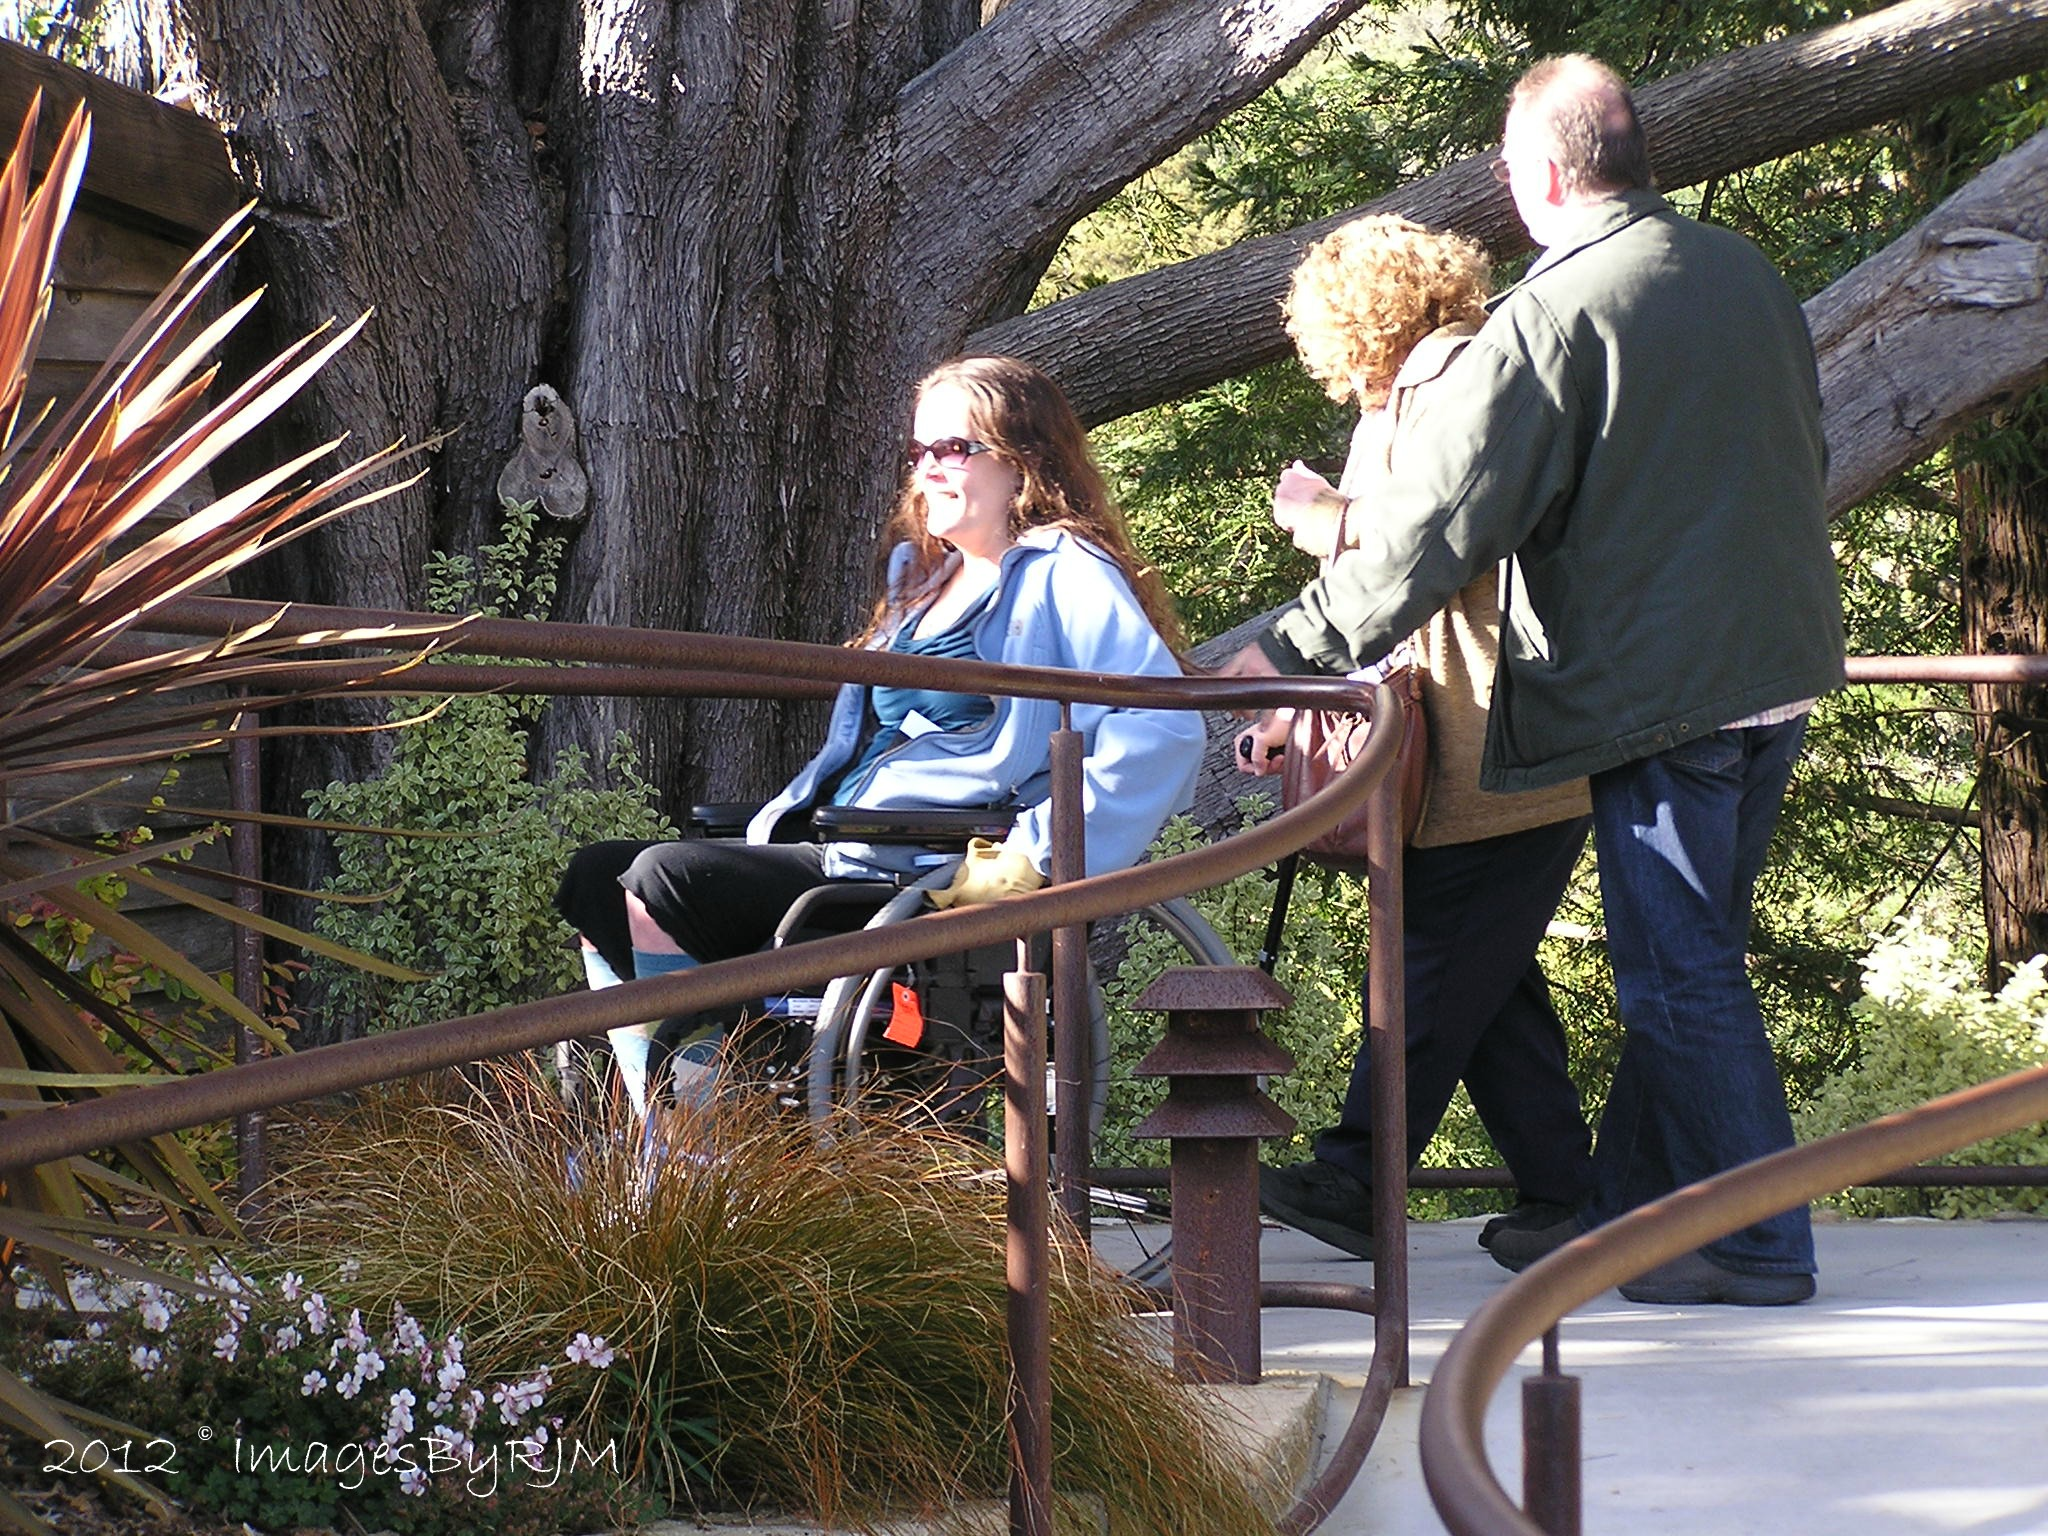 Three people, one in wheelchair, moving along outdoor walkway at Nepenthe Restaurant, Big Sur.